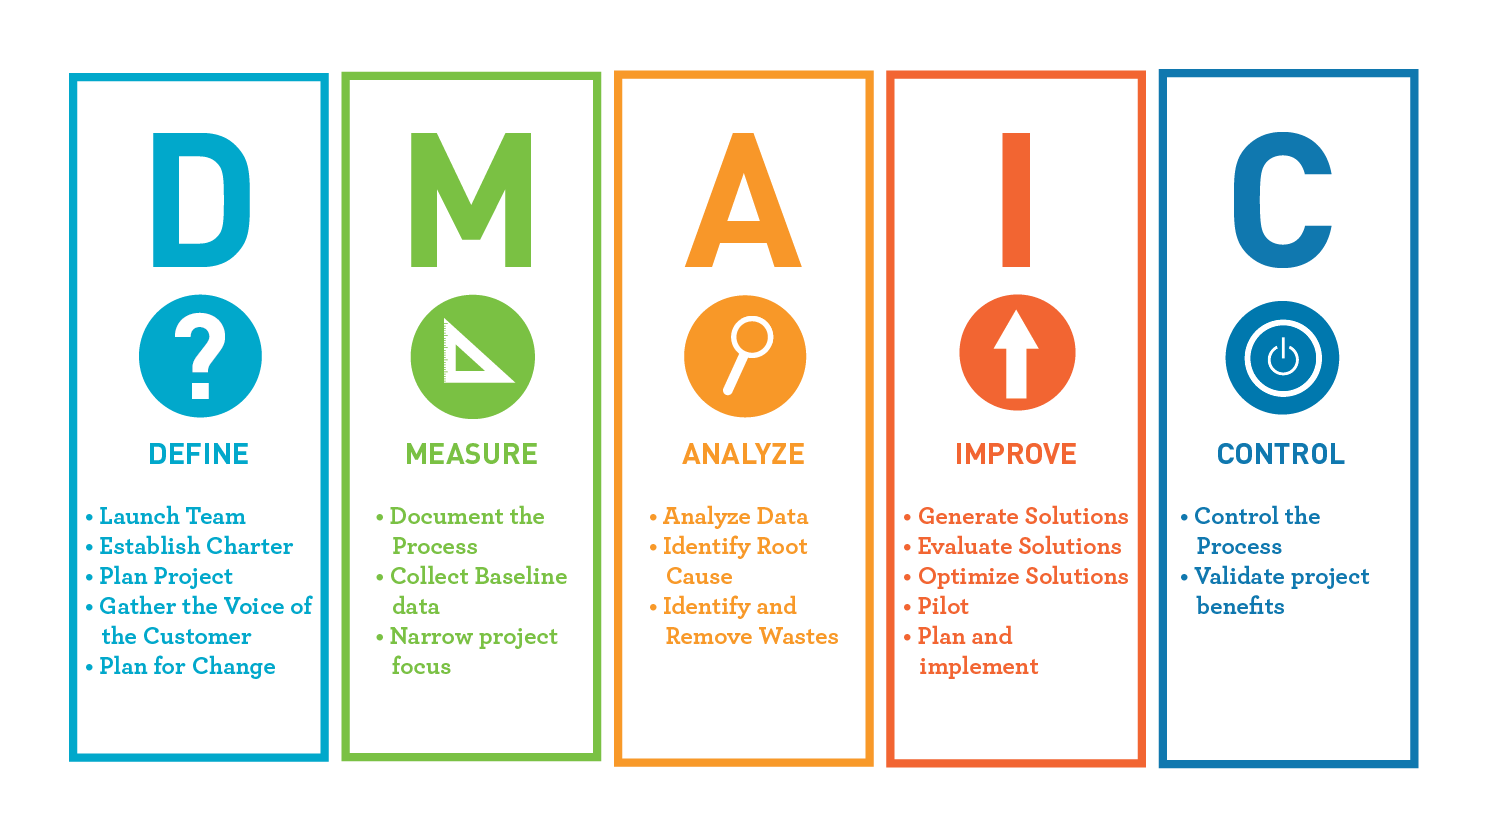 What is DMAIC?